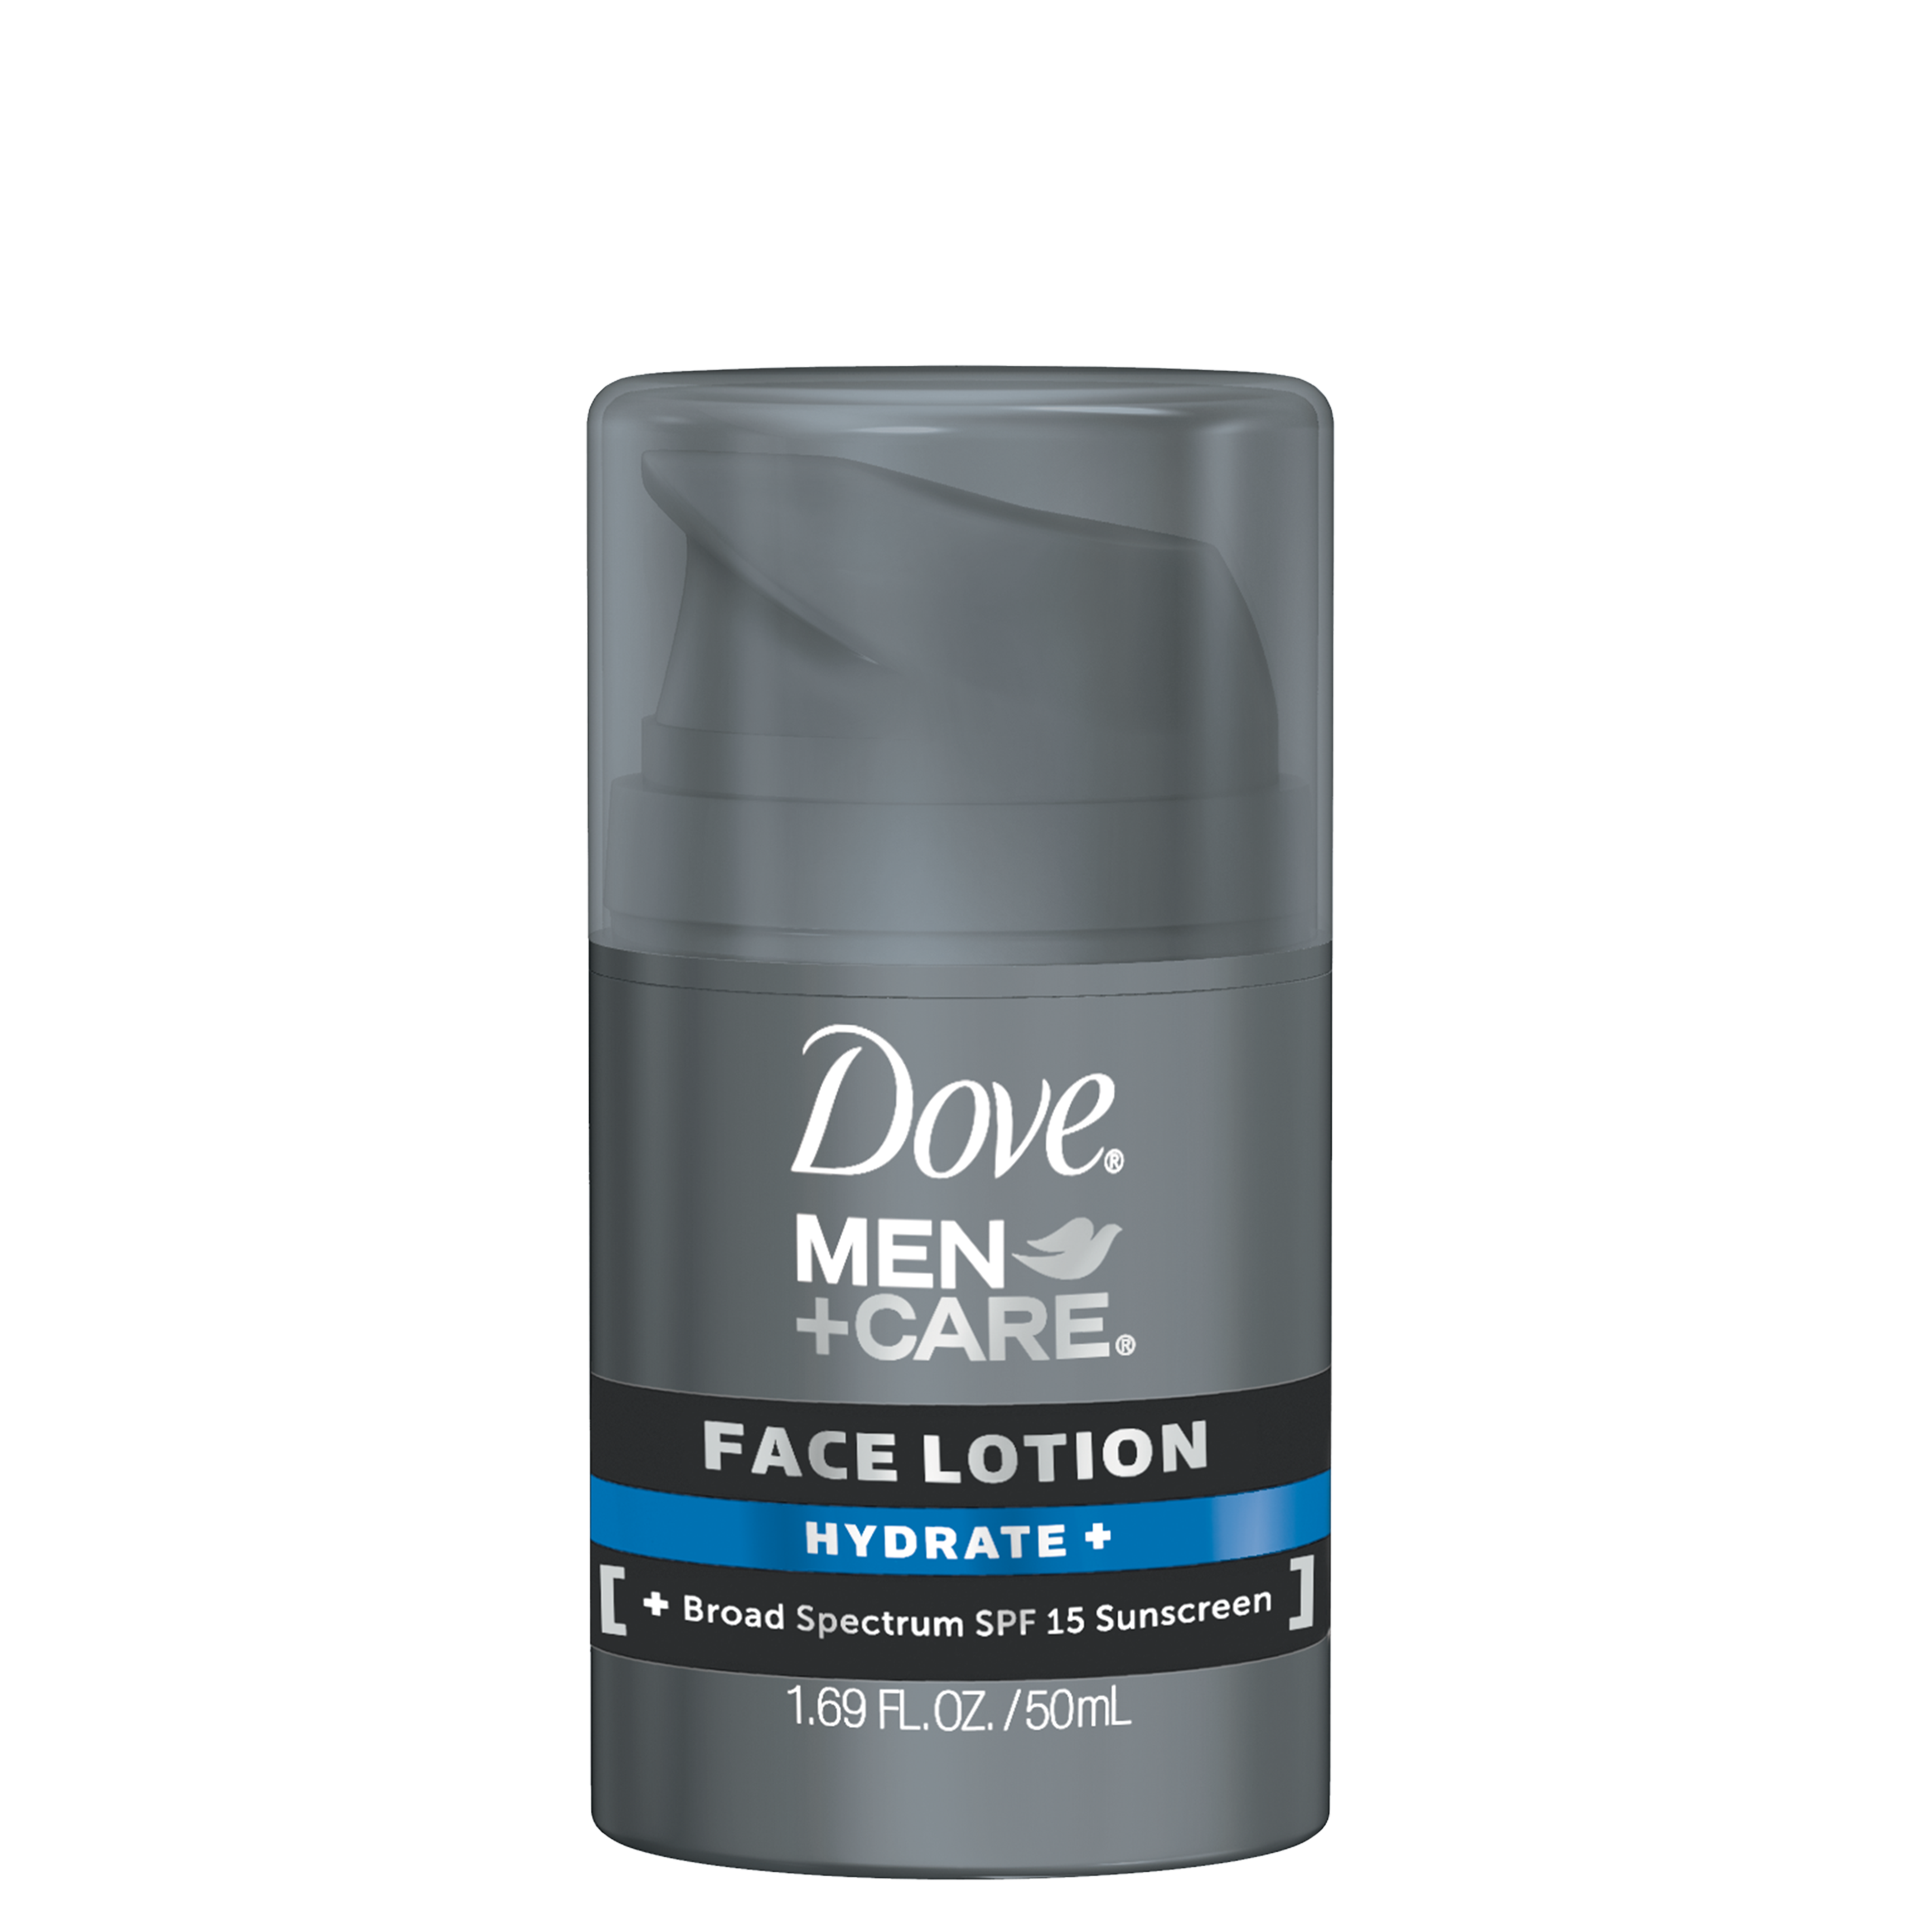 Dove men care face lotion SPF15